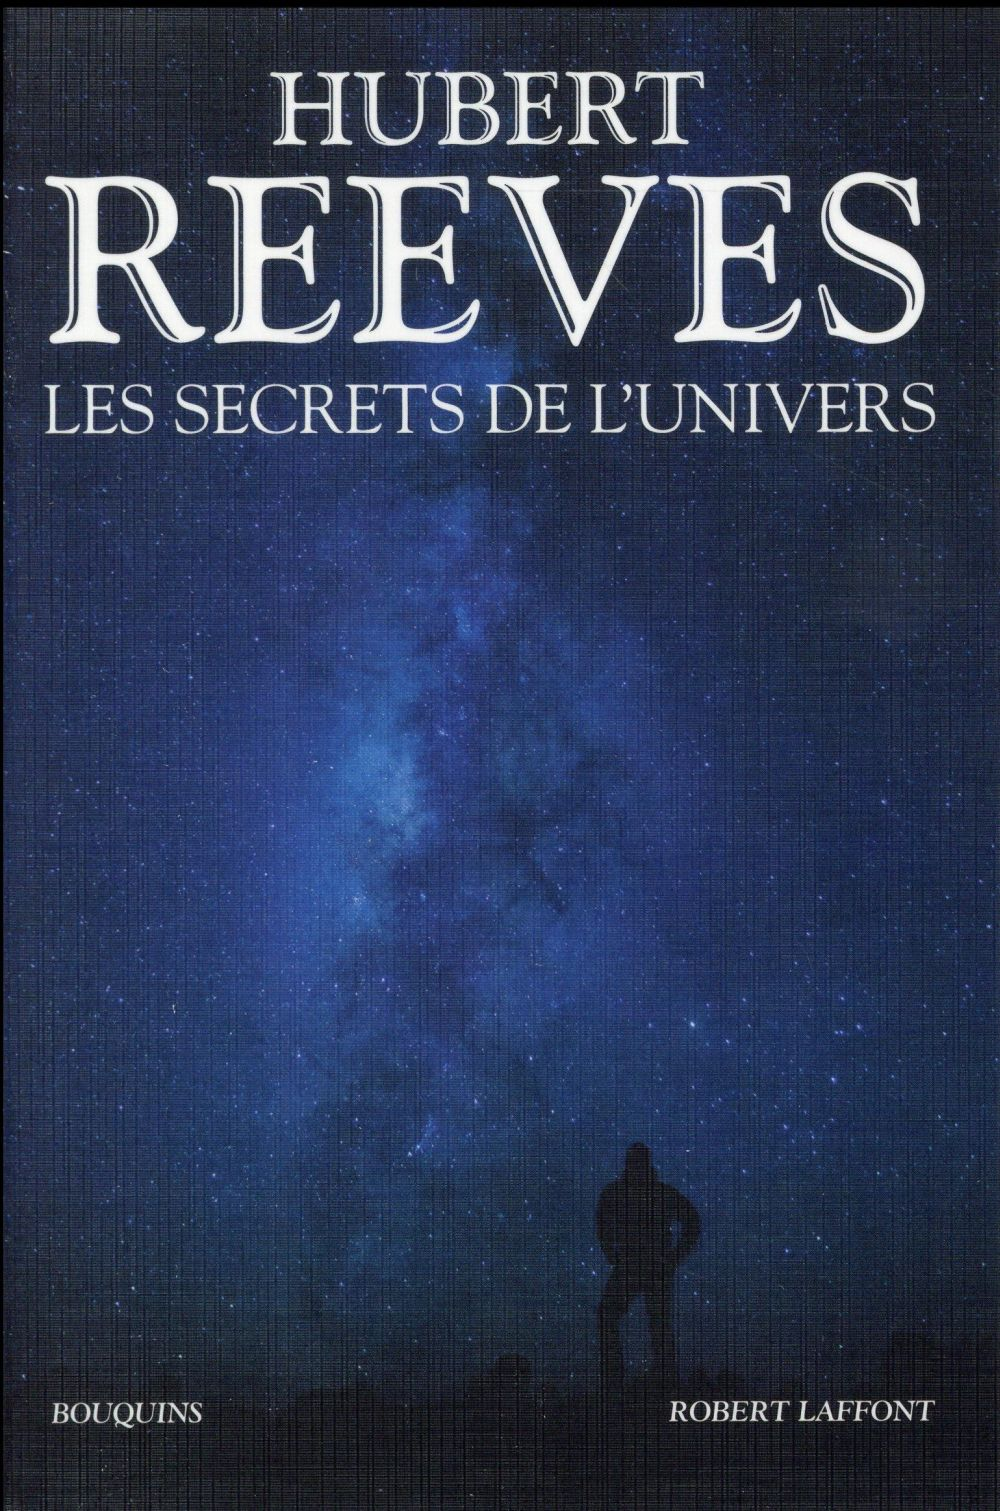 LES SECRETS DE L-UNIVERS REEVES HUBERT BOUQUINS